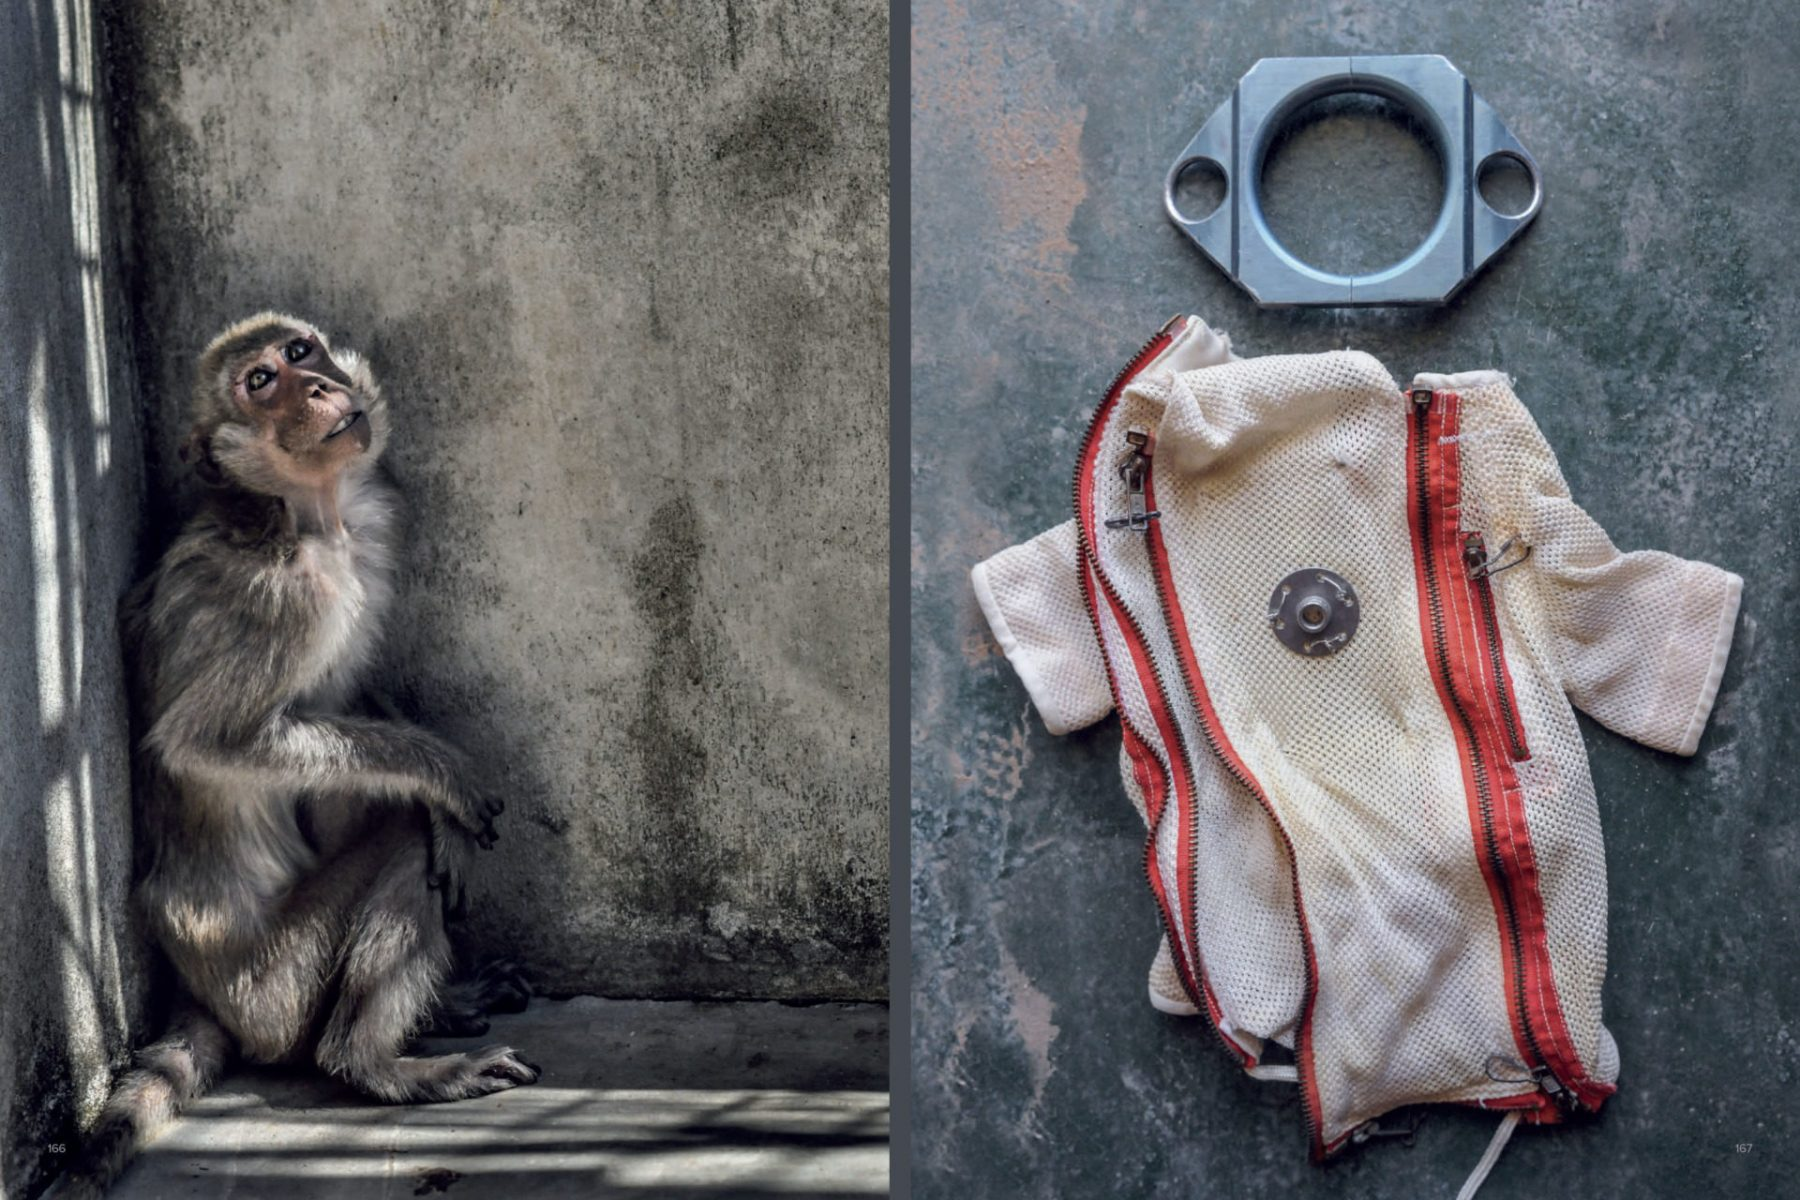 One of hundreds of emaciated long-tailed macaques at a monkey breeding facility for use in scientific research. Laos. Jo-Anne McArthur